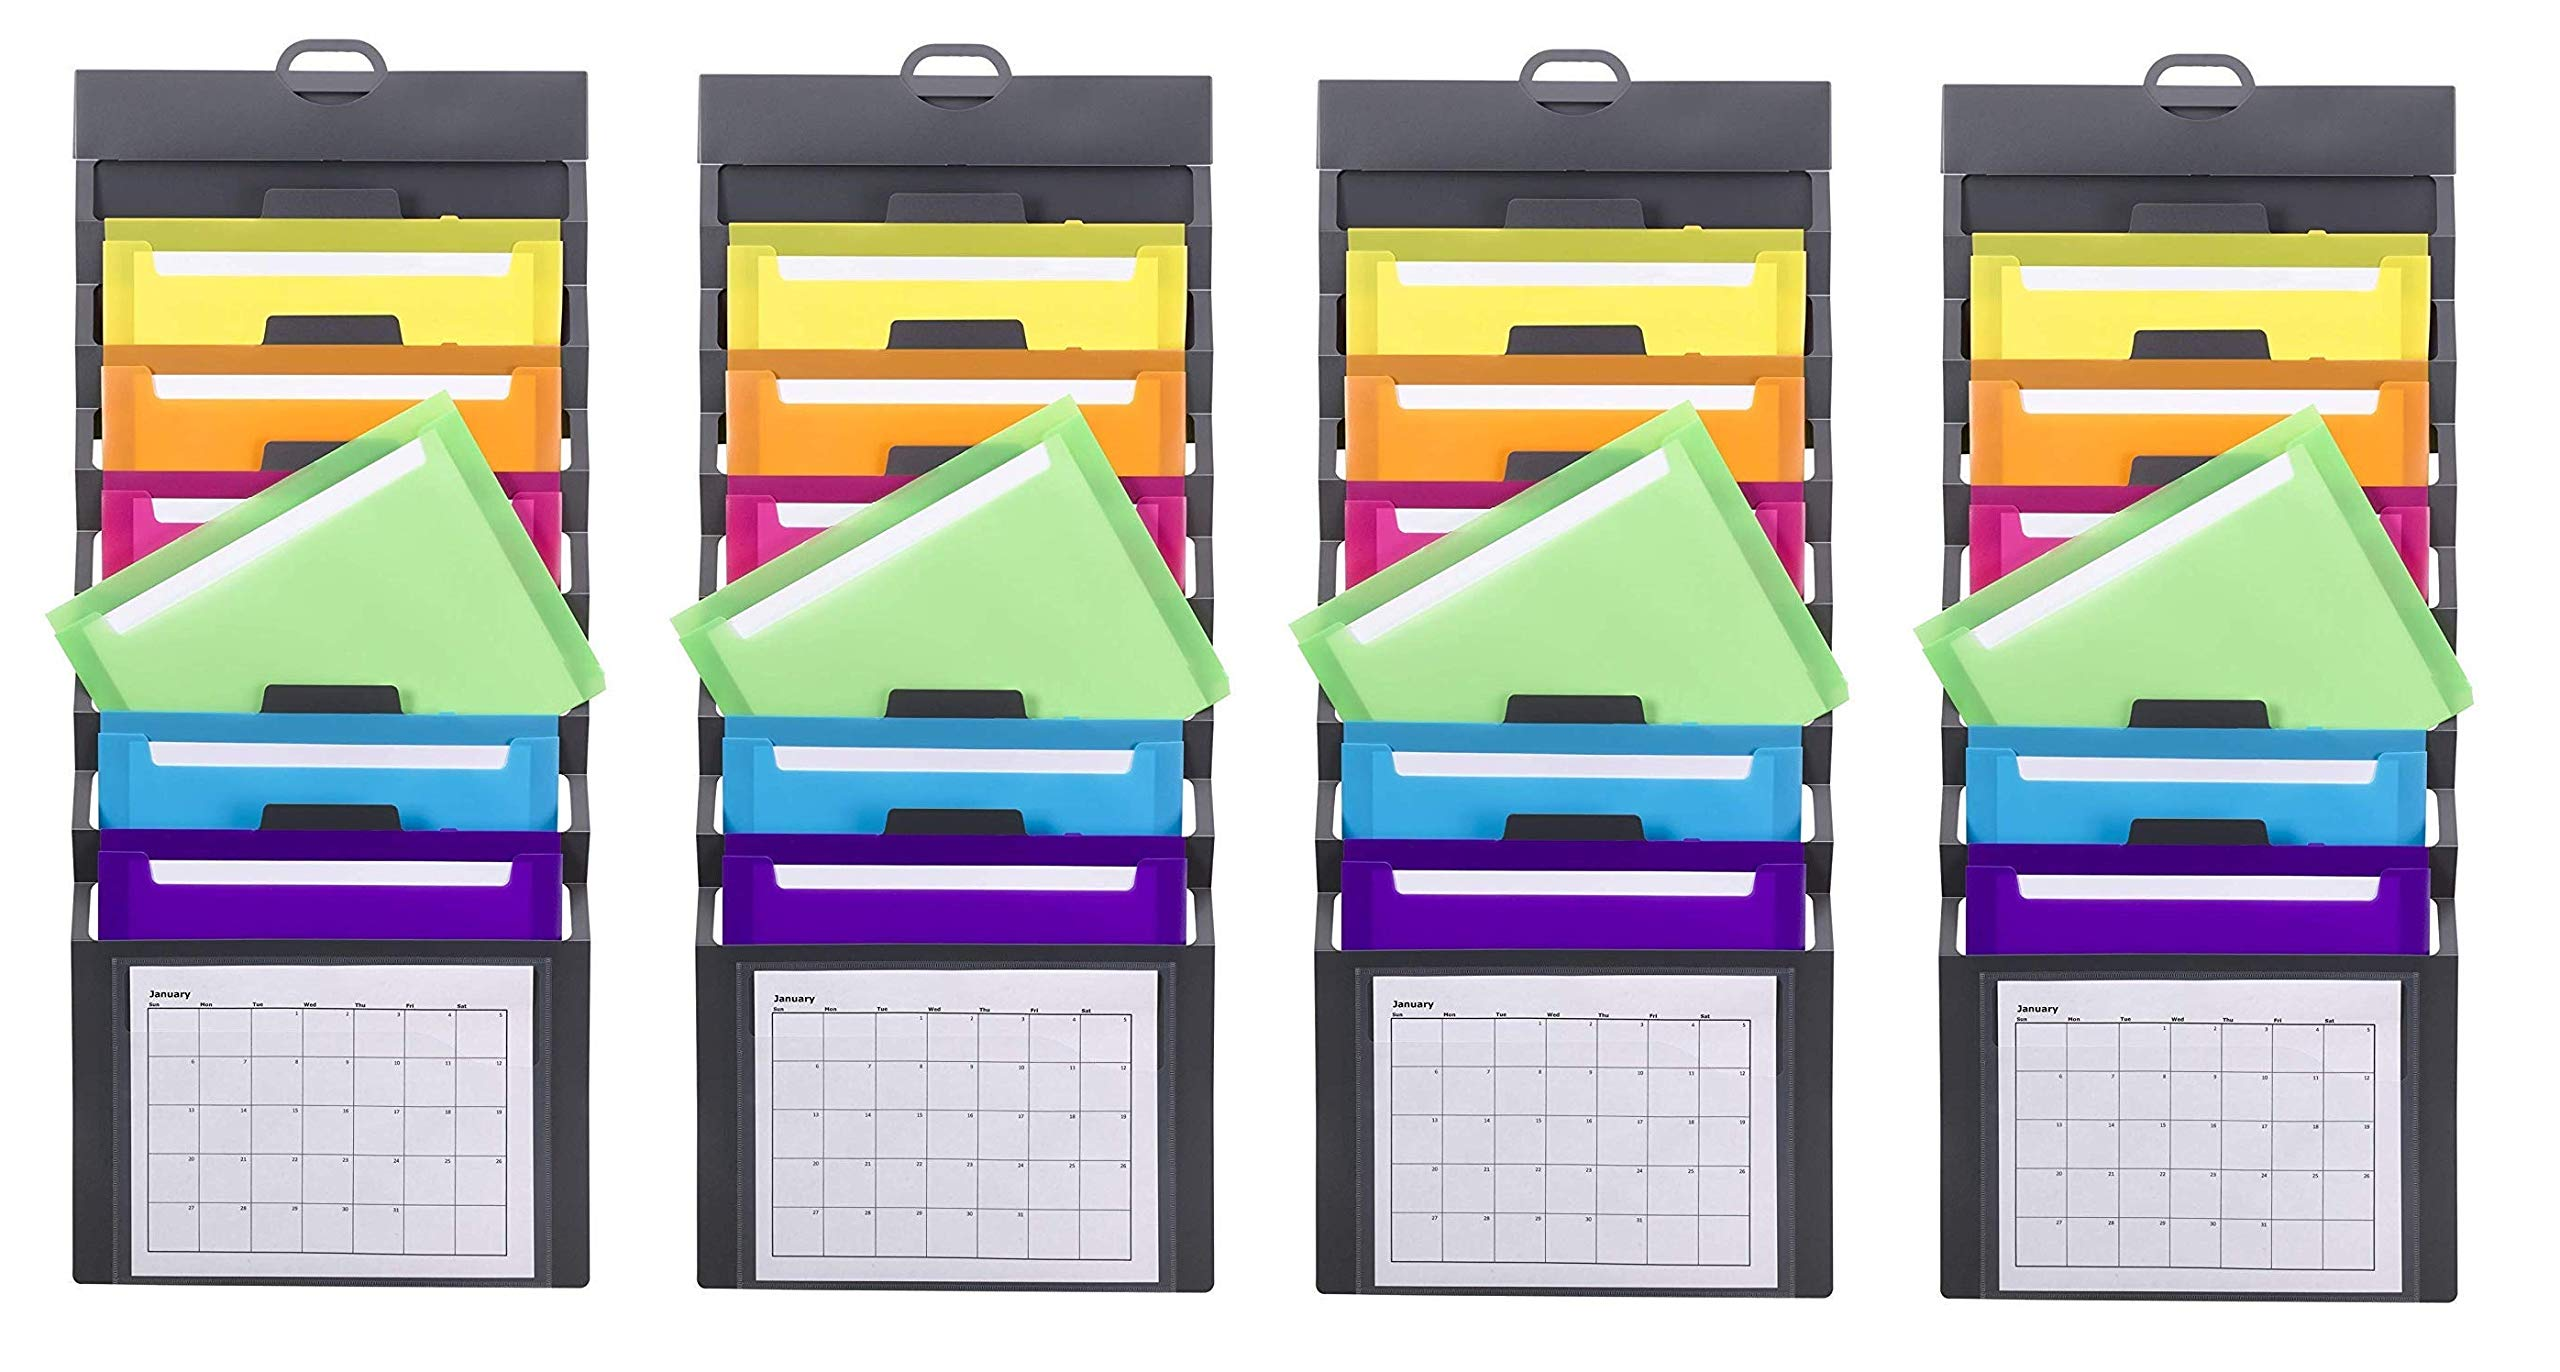 Smead Cascading Wall Organizer, 6 Pockets, Letter Size, Gray/Bright Pockets, Sold as 4 Pack (92060) by Smead